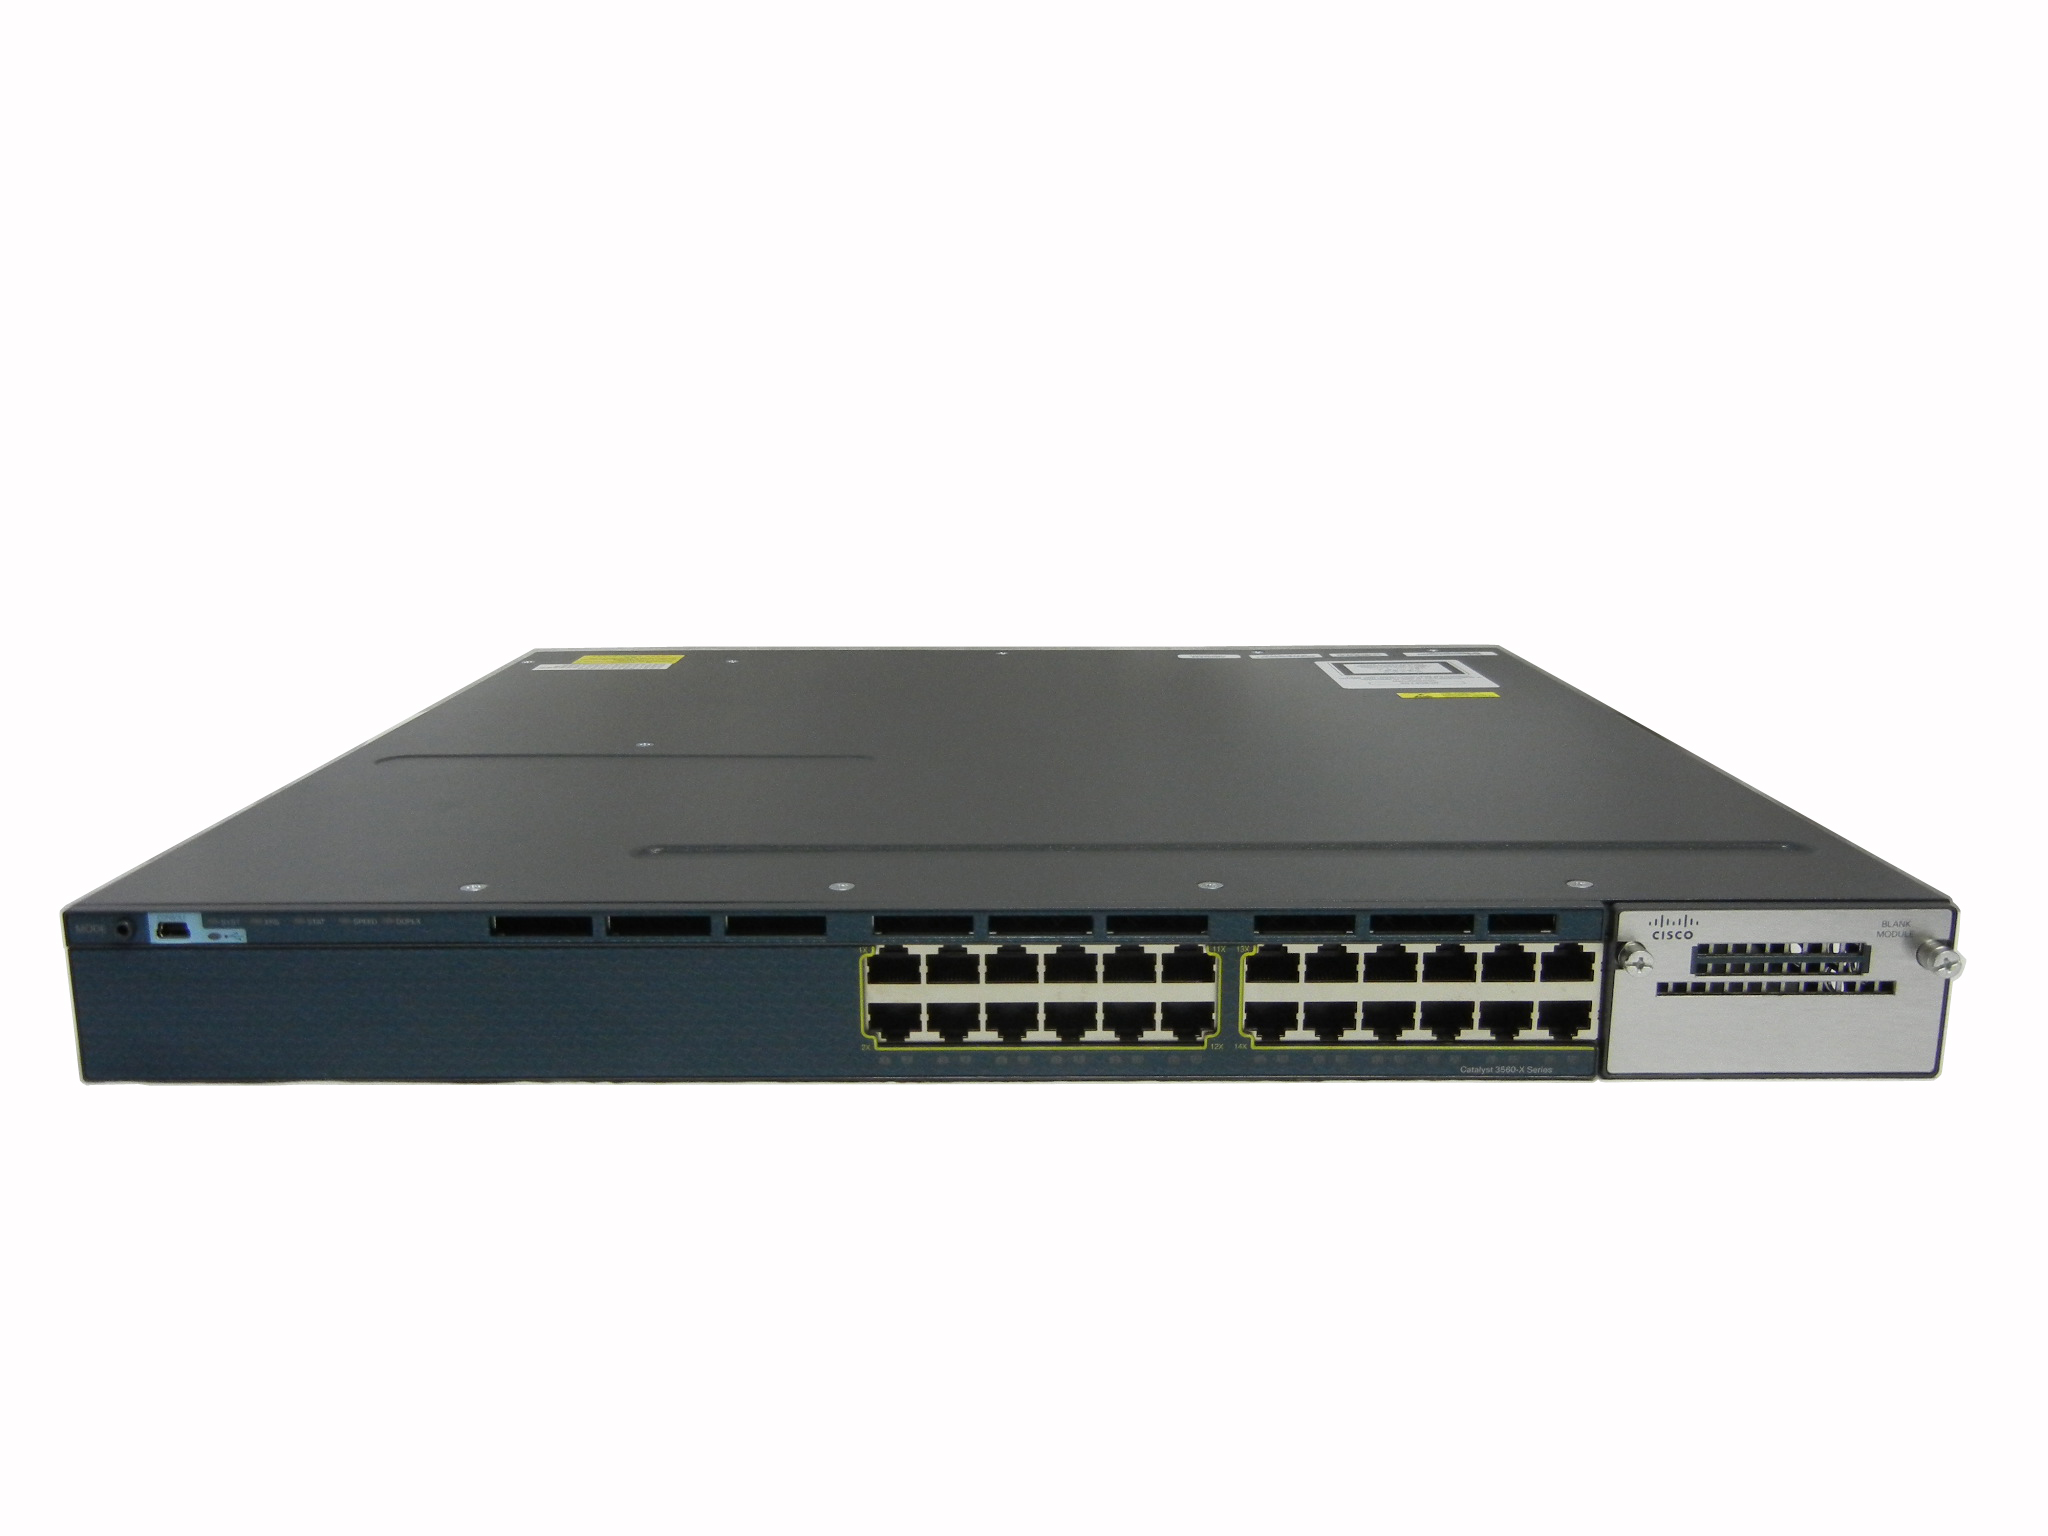 【中古】Cisco Catalyst 3560X-24T-E (WS-C3560X-24T-E)